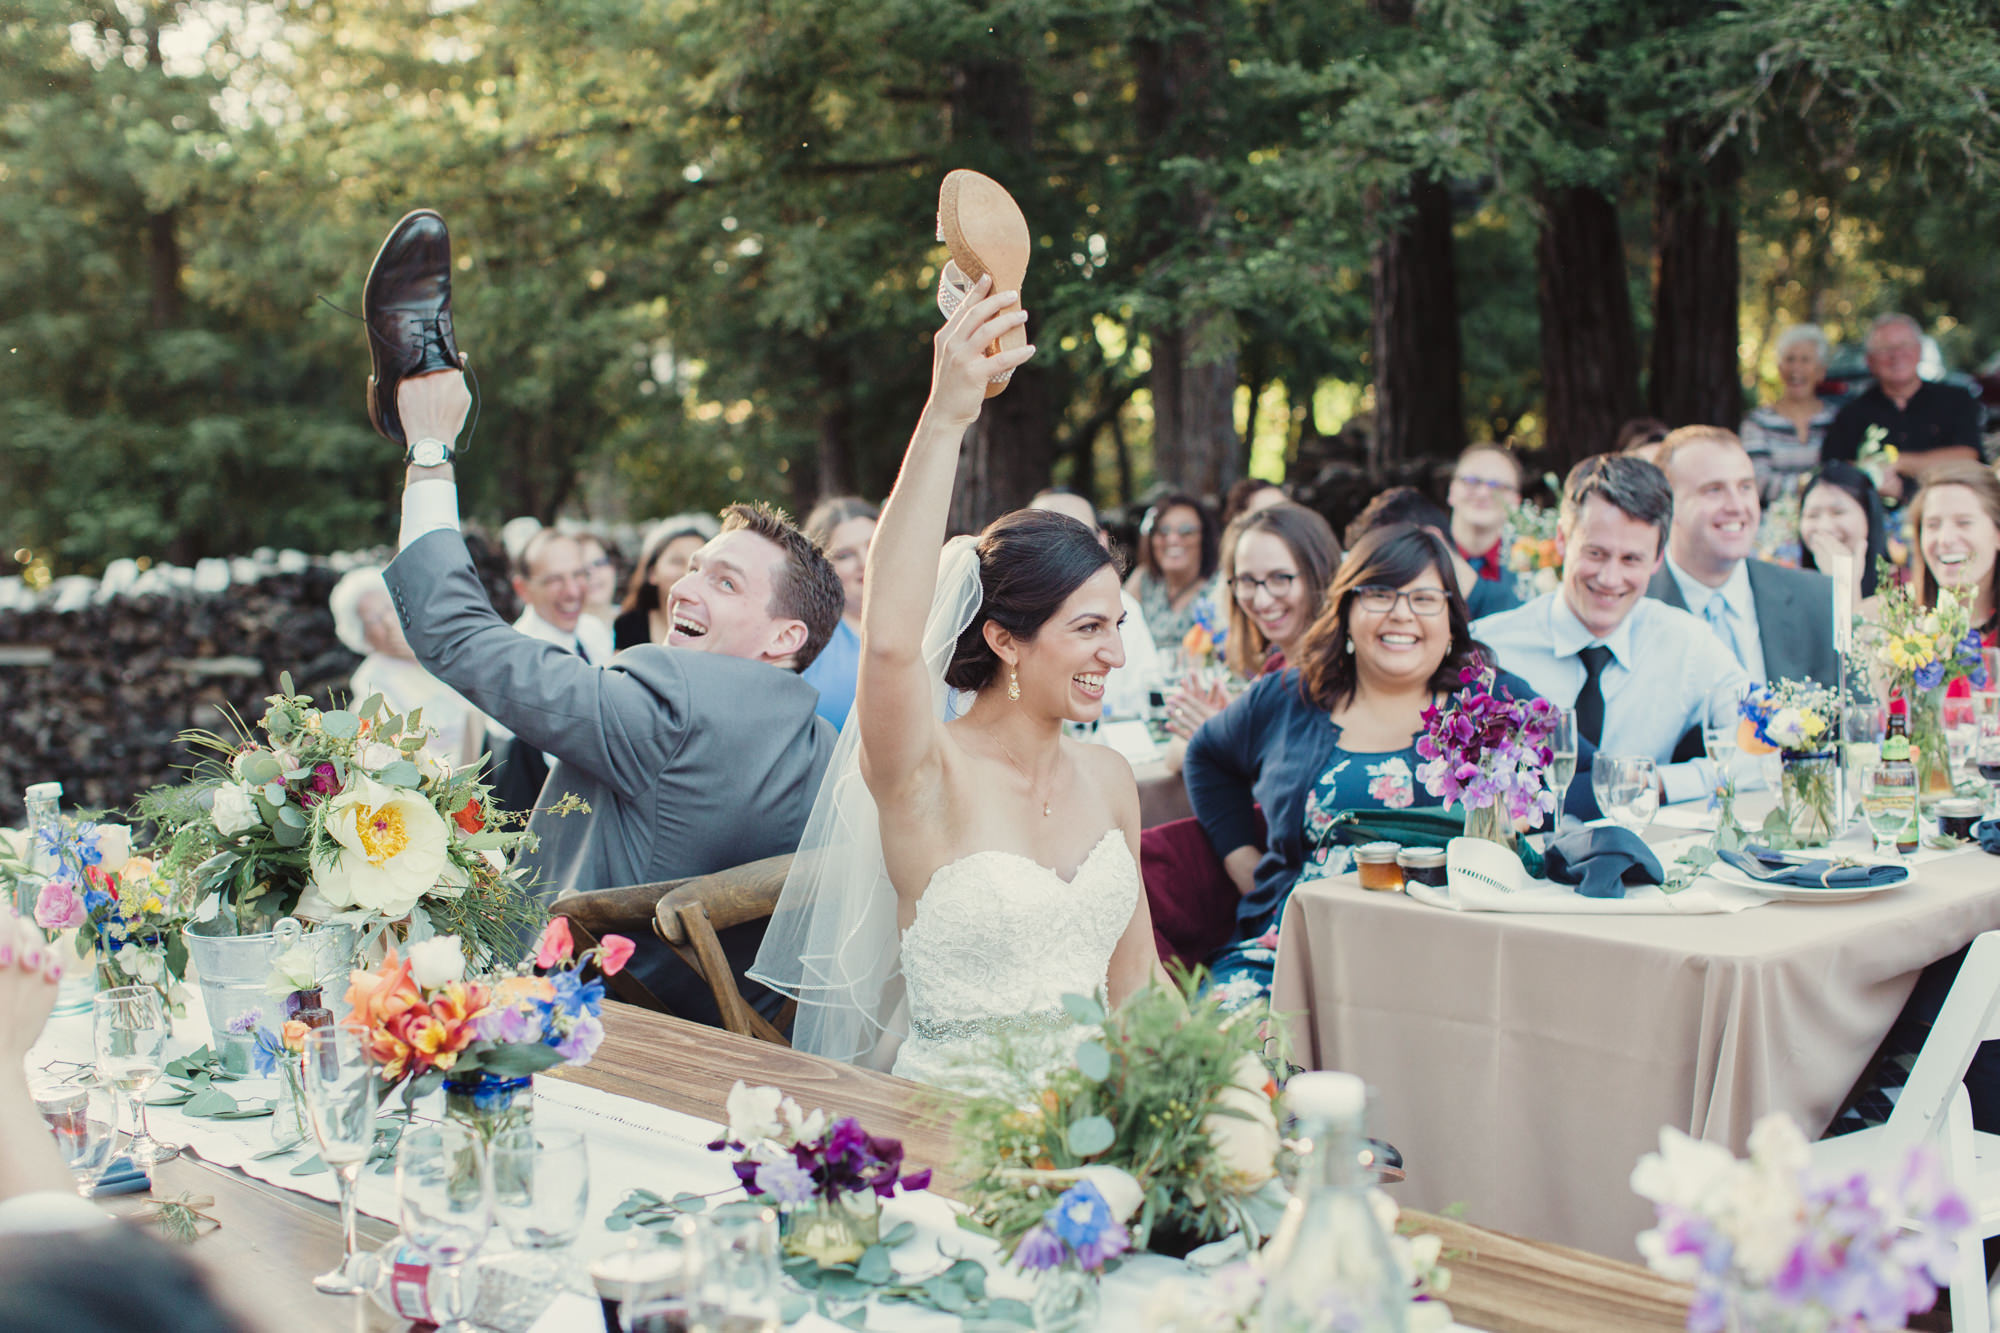 Backyard Wedding in California©Anne-Claire Brun 0029